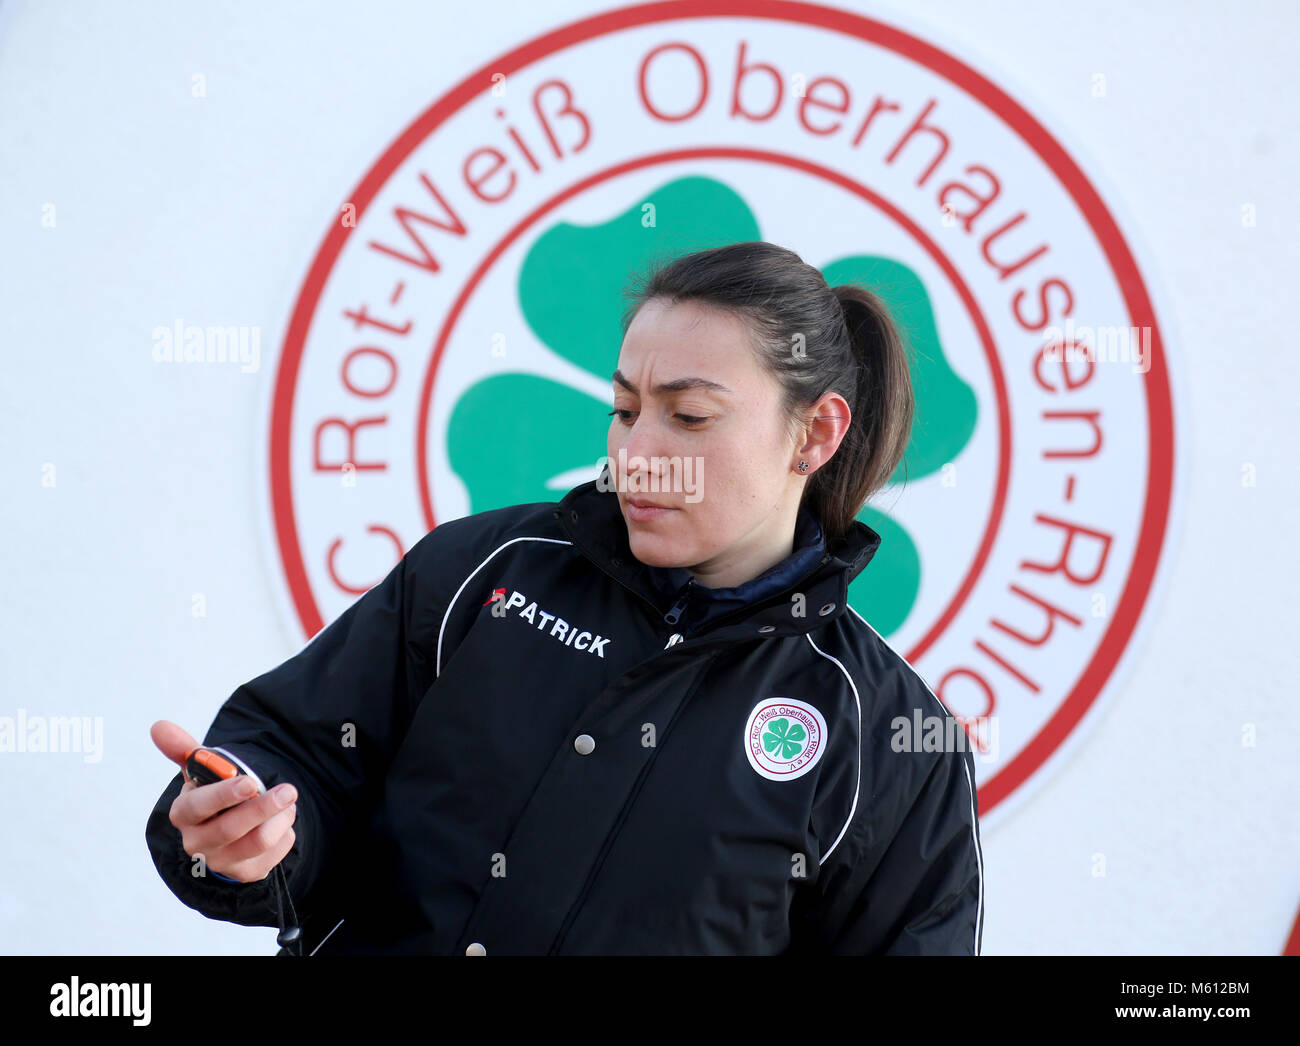 20 February 2018, Germany, Oberhausen: Duygu Erdogan, assistant coach of soccer club Rot-Weiss Oberhausen. 29-year Stock Photo